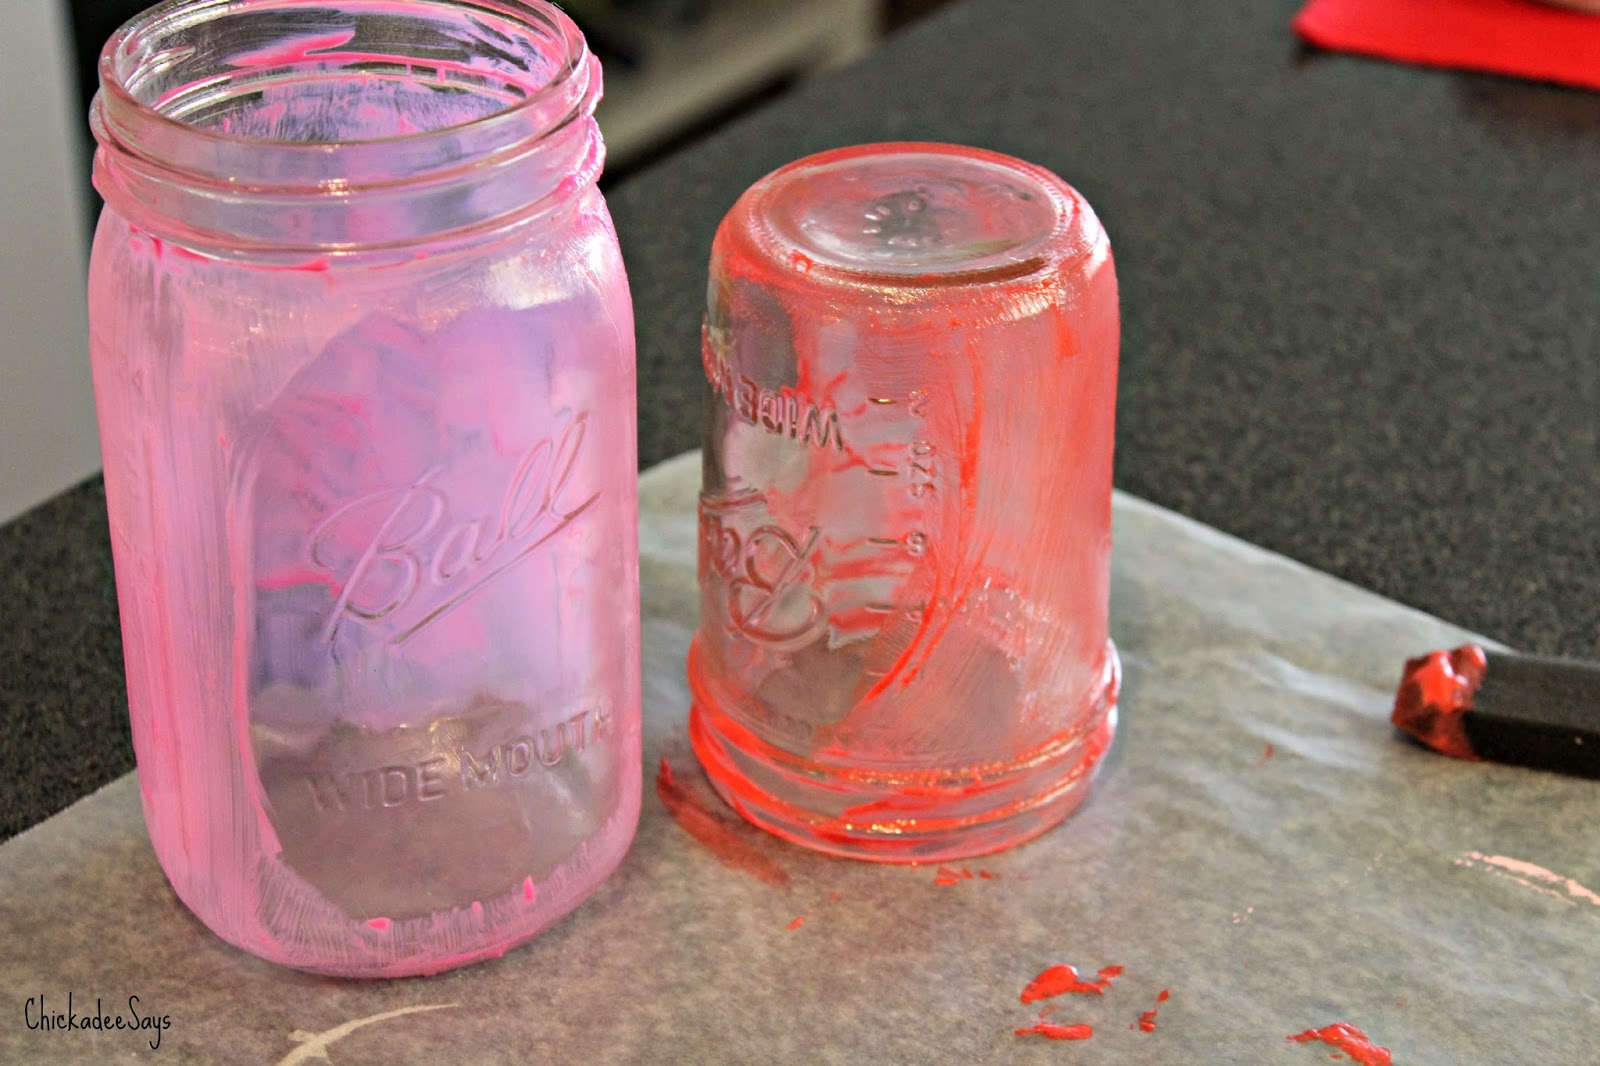 Do it yourself valentines day mason jar treats habits of a paint thoroughly washed mason jars with translucent glass paint leaving an oval as a window to see the candy through no need to be too careful solutioingenieria Gallery